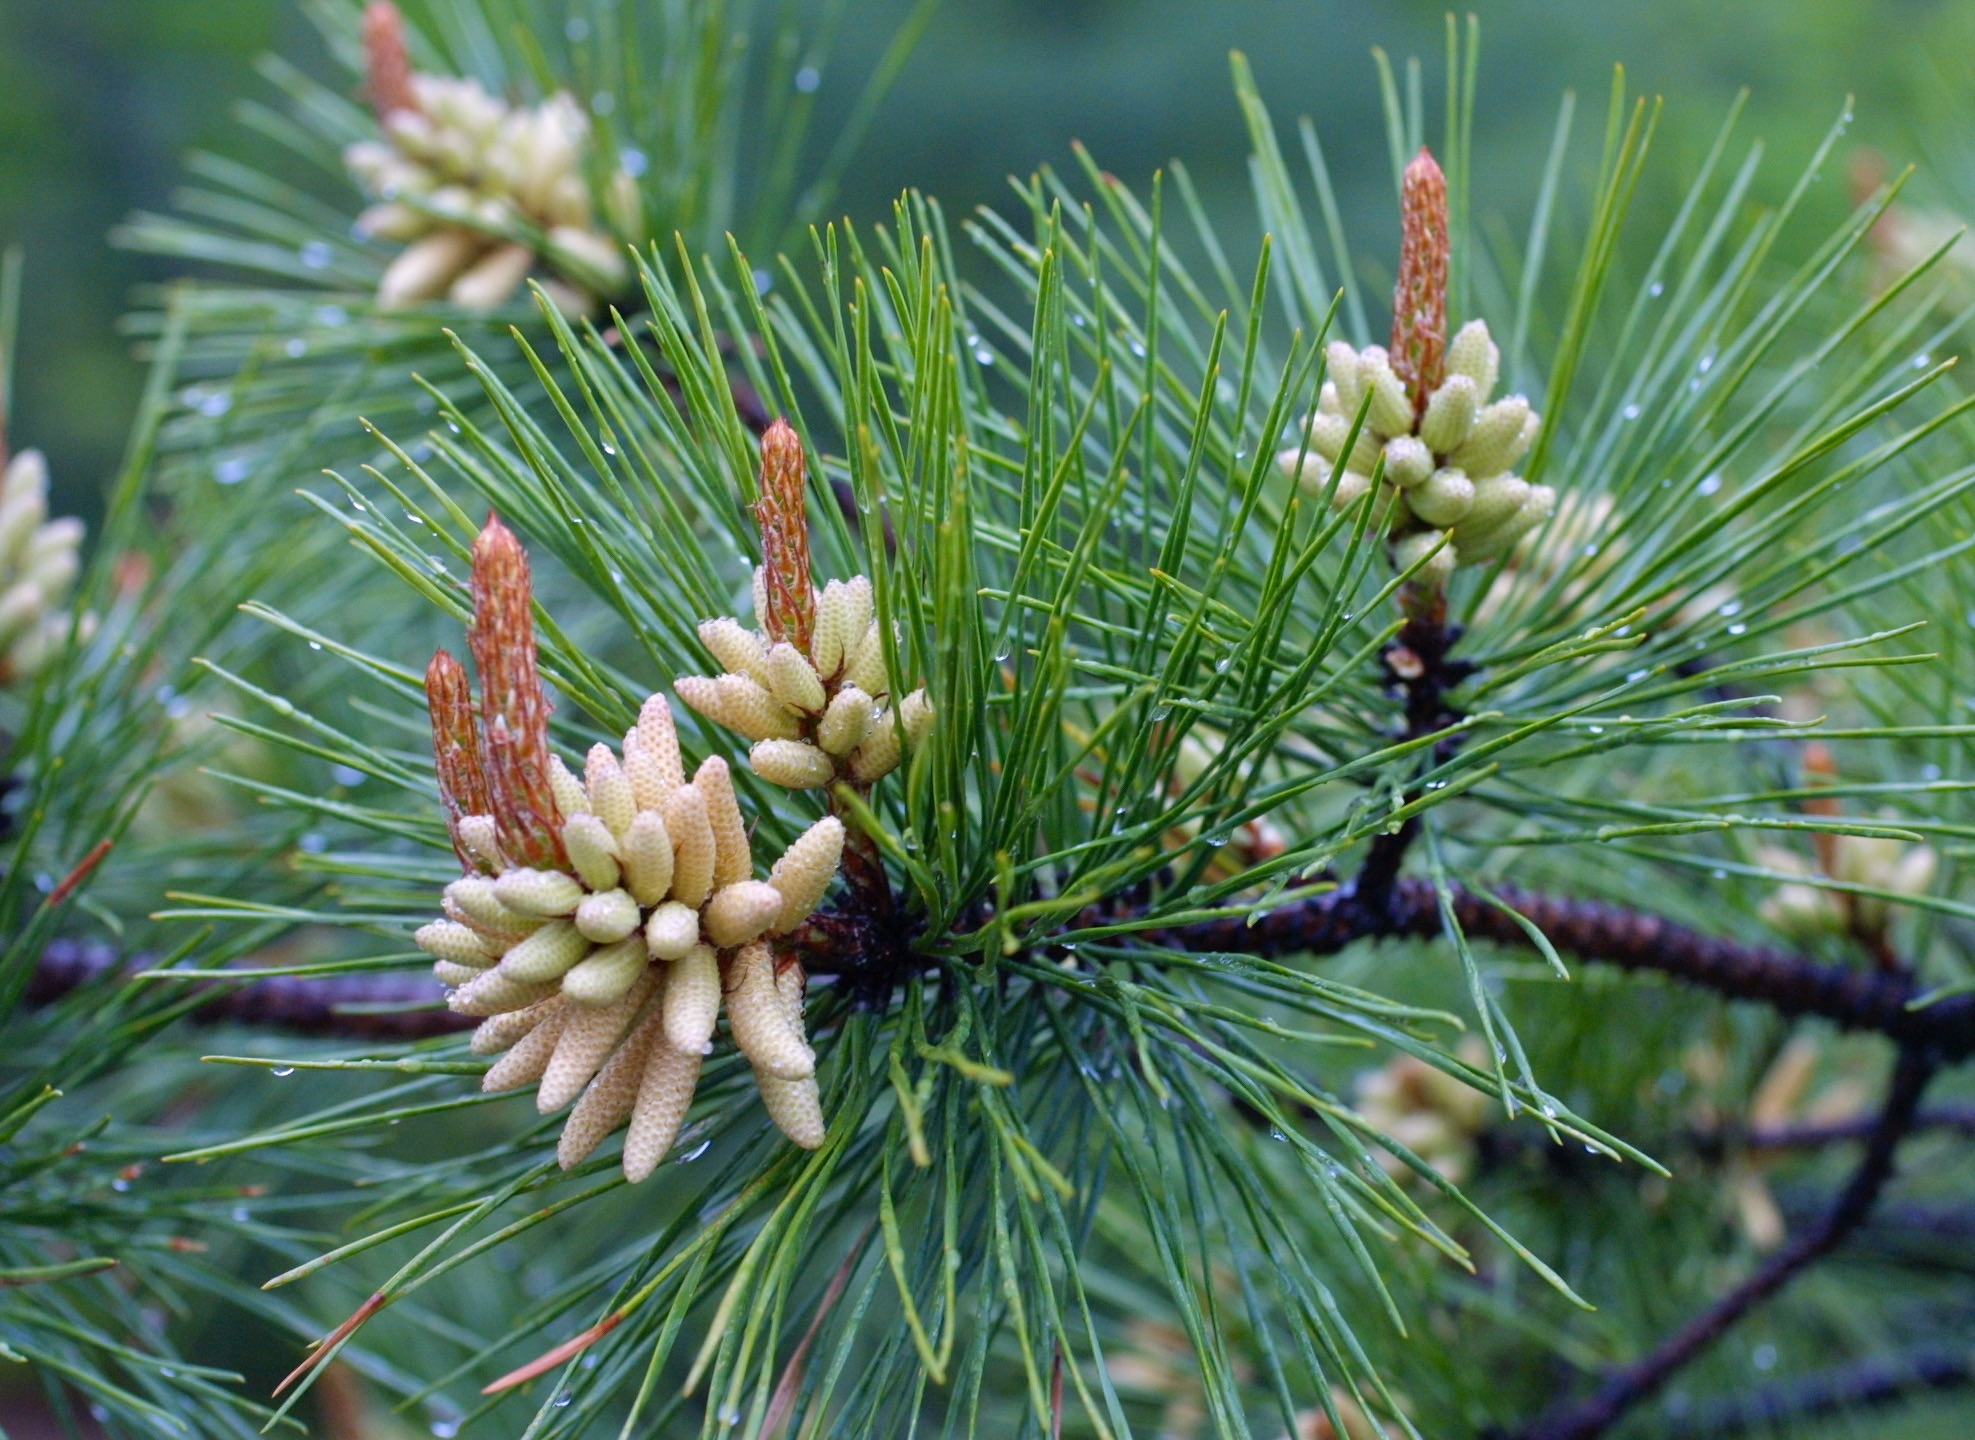 The Scientific Name is Pinus rigida. You will likely hear them called Pitch Pine, Hard Pine. This picture shows the Stout, twisting needles in bundles of 3, with developing male and female cones of Pinus rigida